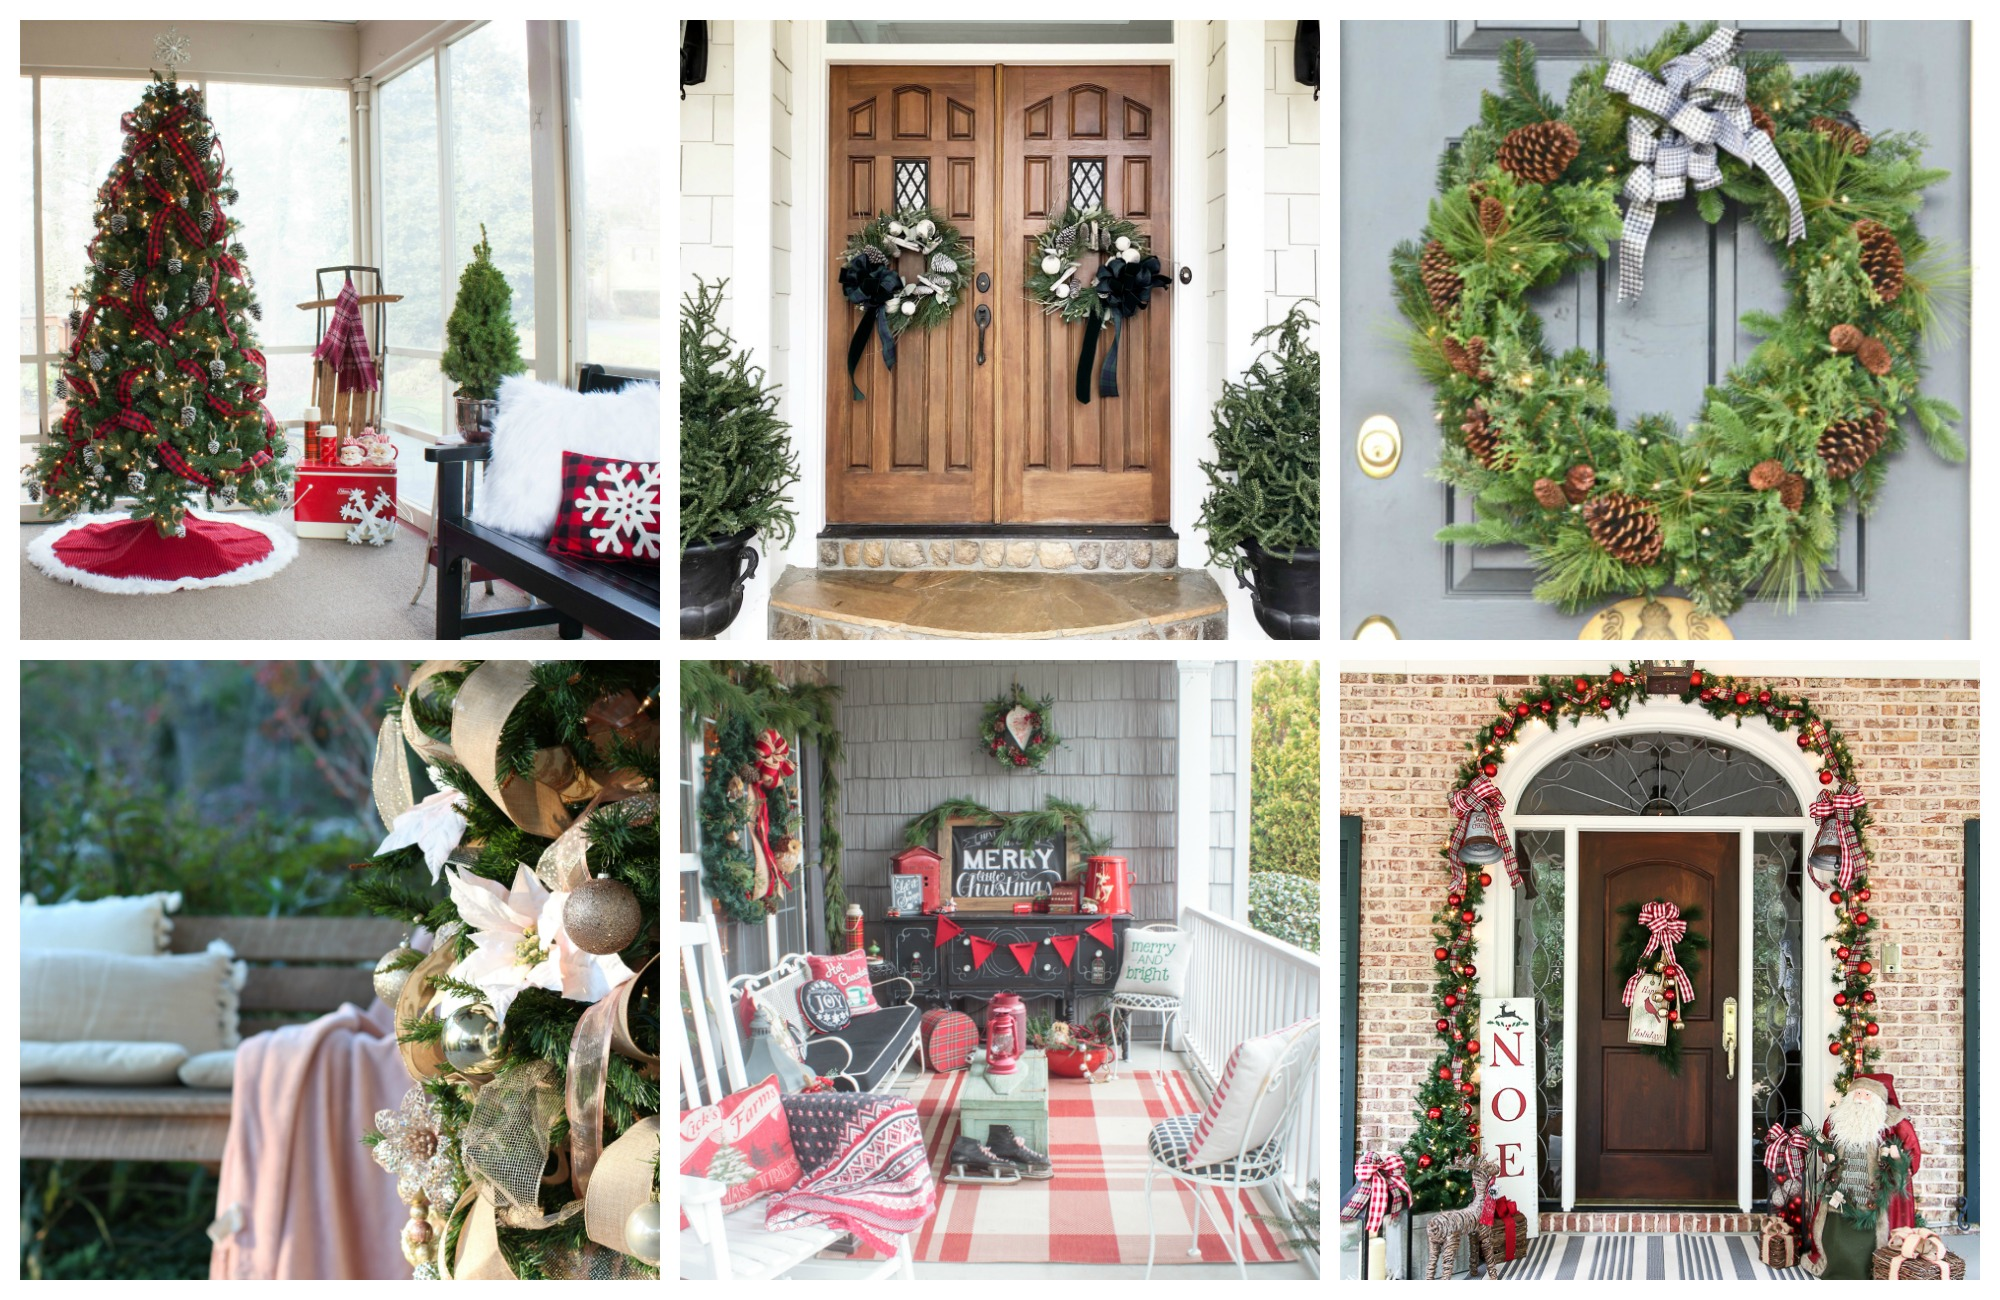 Tuesday collage photo featuring four Christmas porches.